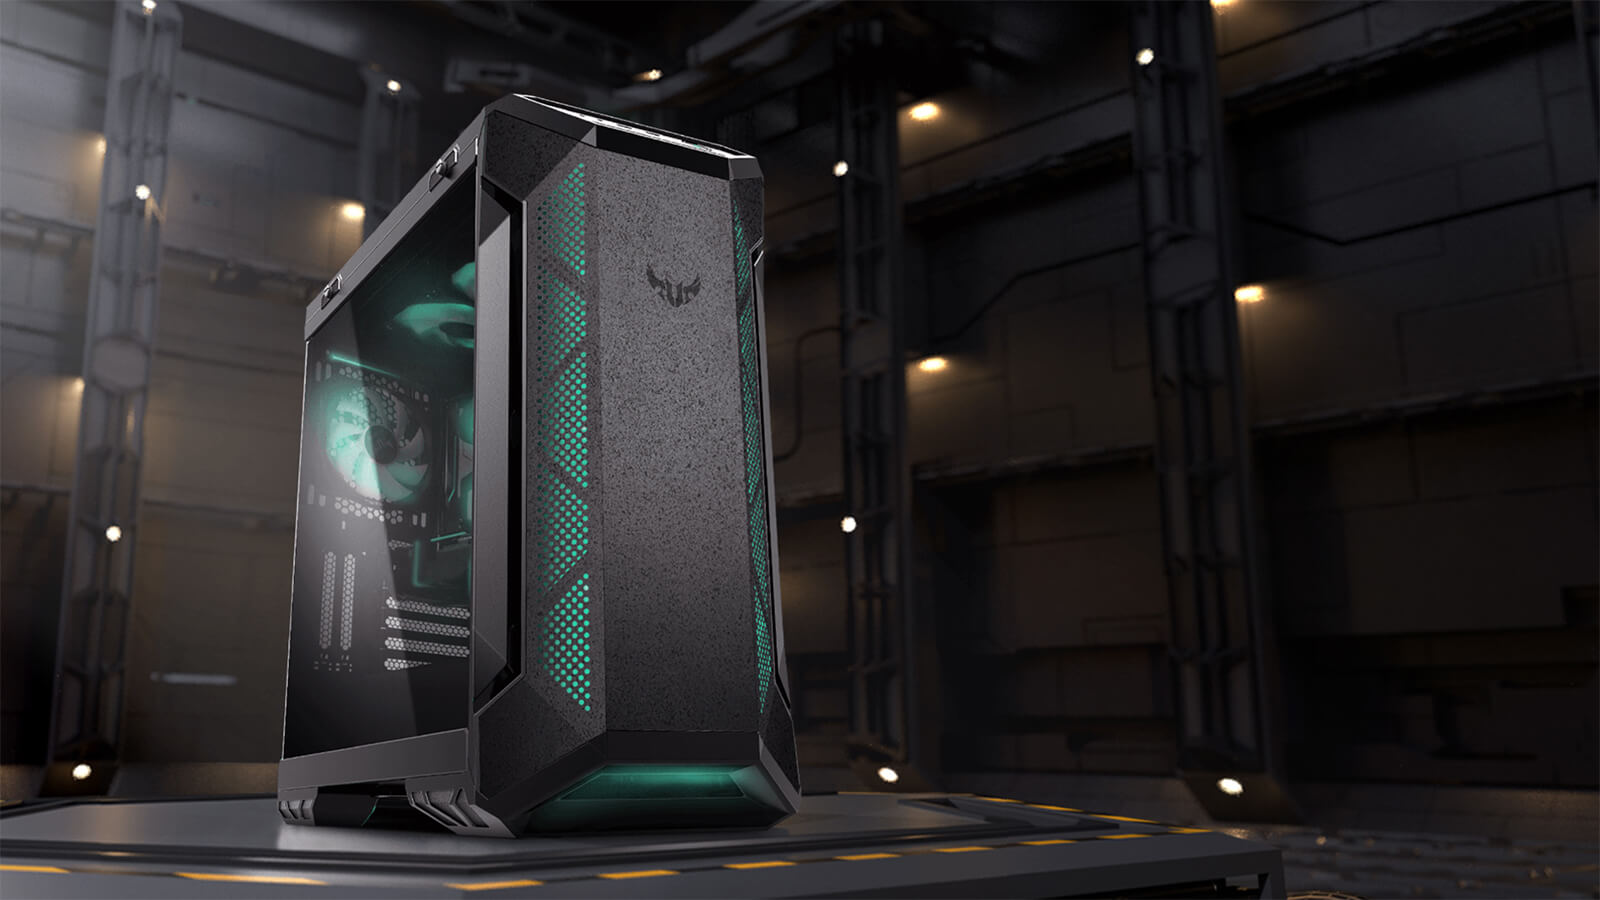 Asus Tuf Gaming Gt501vc Mid Tower Gaming Case Features 01